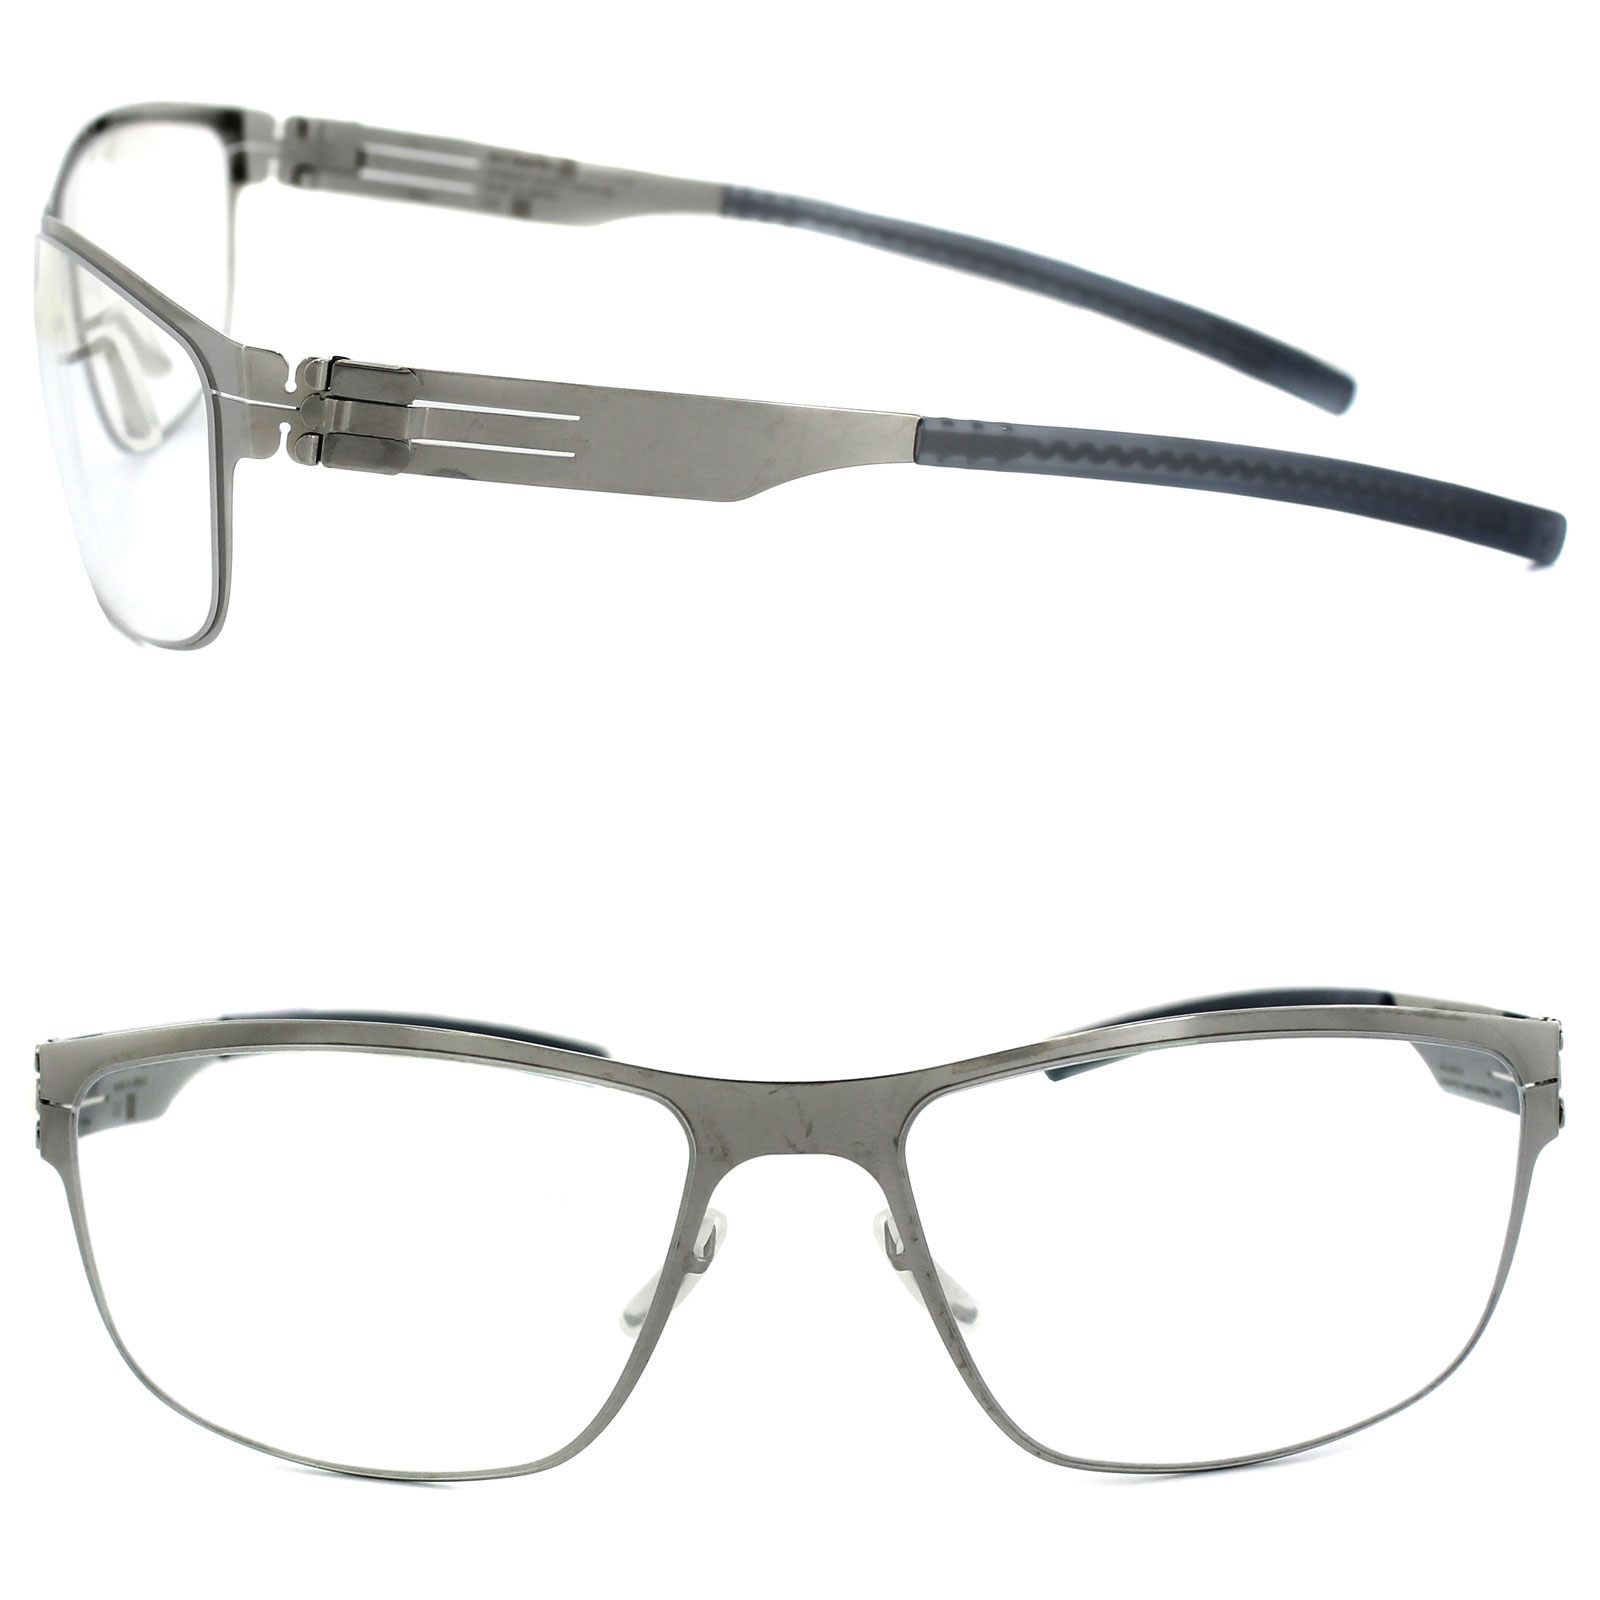 Cheap Ic Berlin Susten Large Glasses Frames Discounted Sunglasses